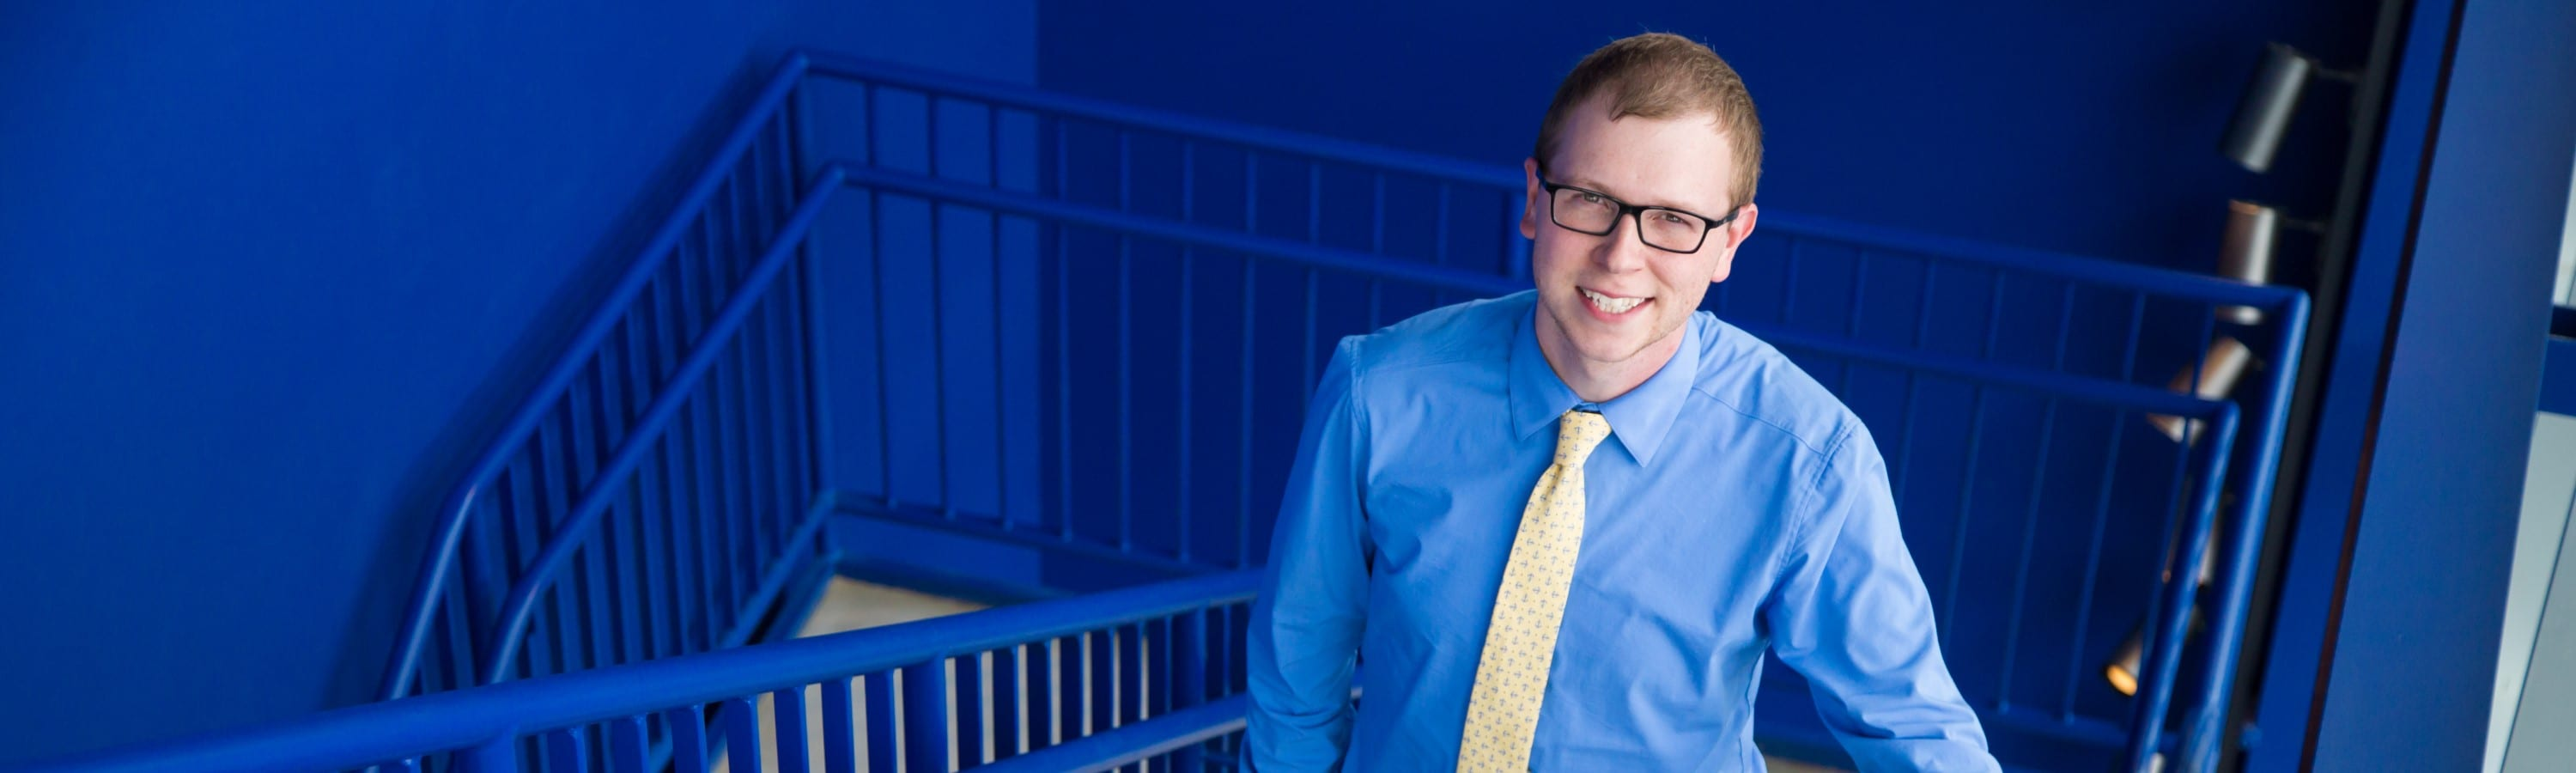 Young Professional standing in a blue stairwell.